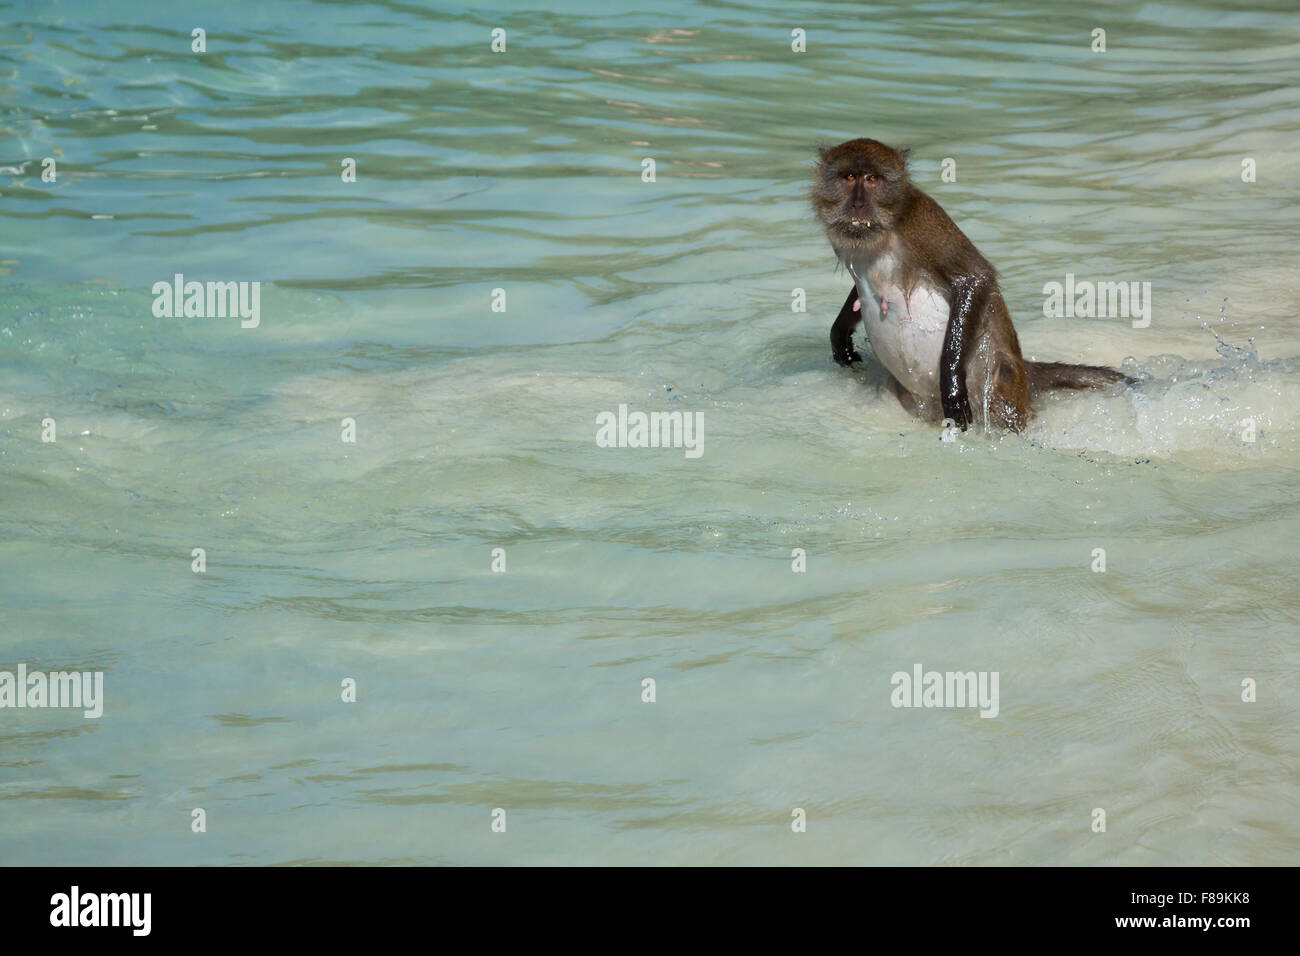 Monkey At The Monkey Beach In Koh Phi Phi Island Thailand